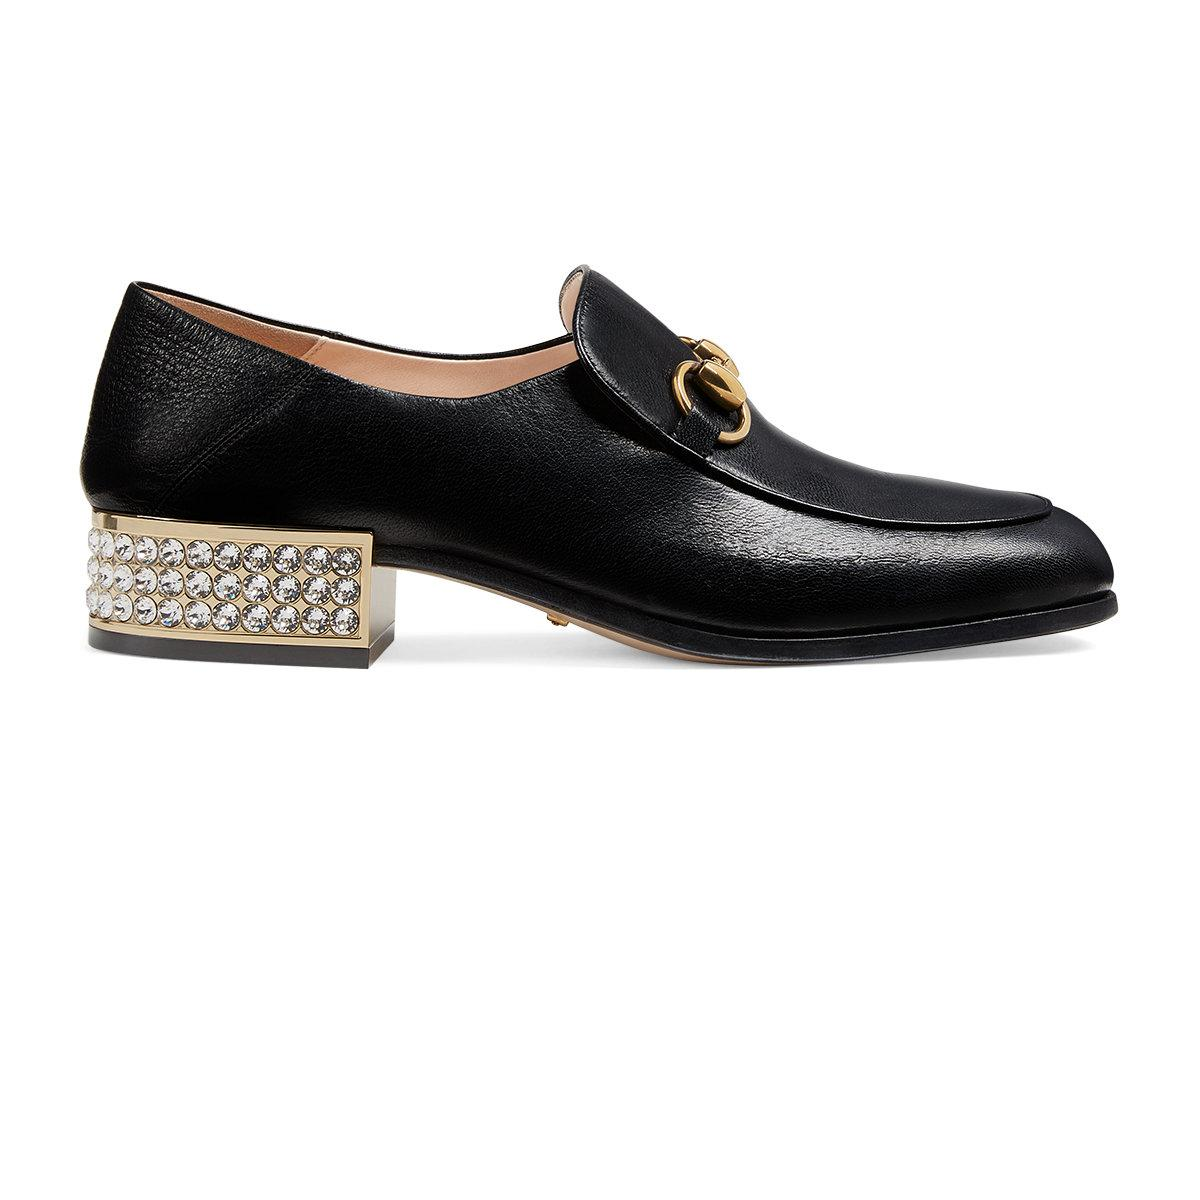 e7t0seCwCt Womens Mister Crystal Convertible Loafer 4QeDa